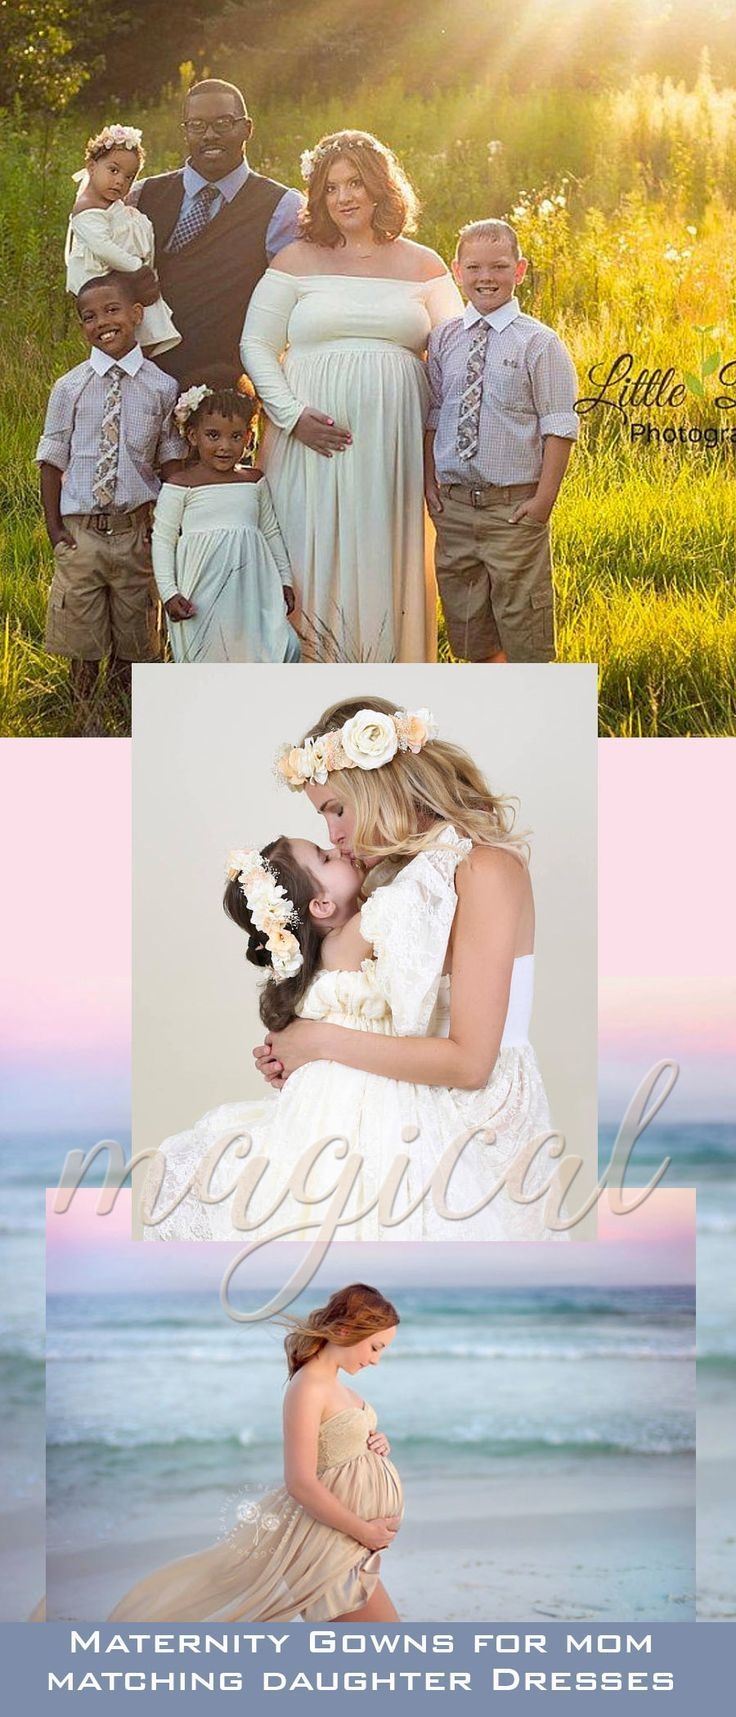 Family photos capture a precious moment ~ too soon that time is gone. These beautiful, comfortable mommy and me gowns are perfect for any special event, and for photoshoots. So many beautiful colors to choose from too. #familyphotography #dresses #maternity #daughter #maternityfashion #ad